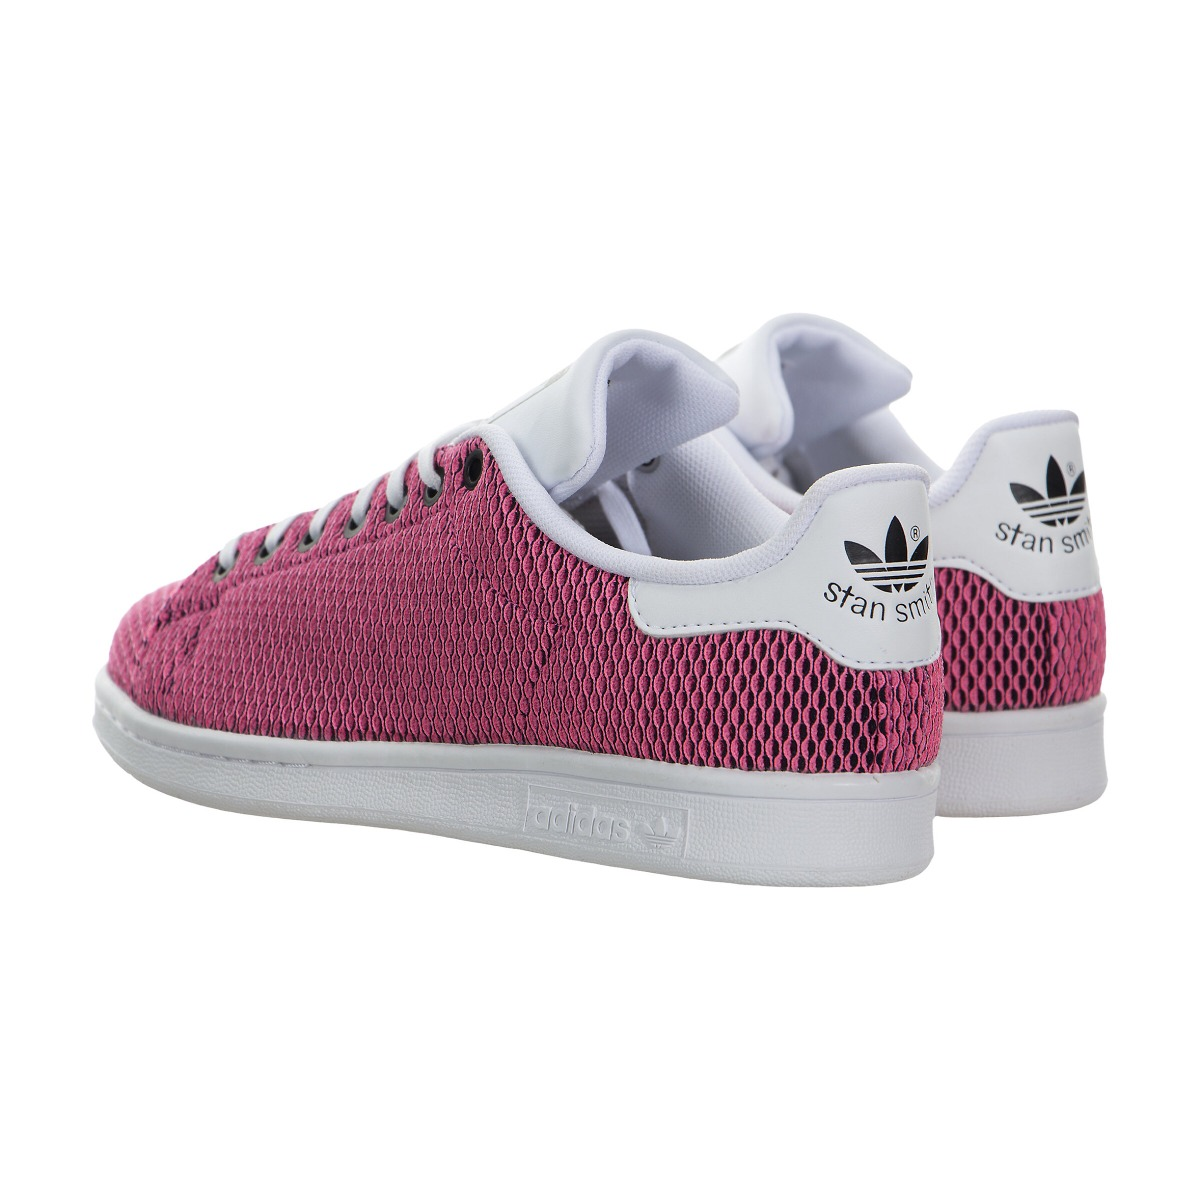 b0f4348be0c38 tenis adidas originals stan smith nuevos originales s76336. Cargando zoom.